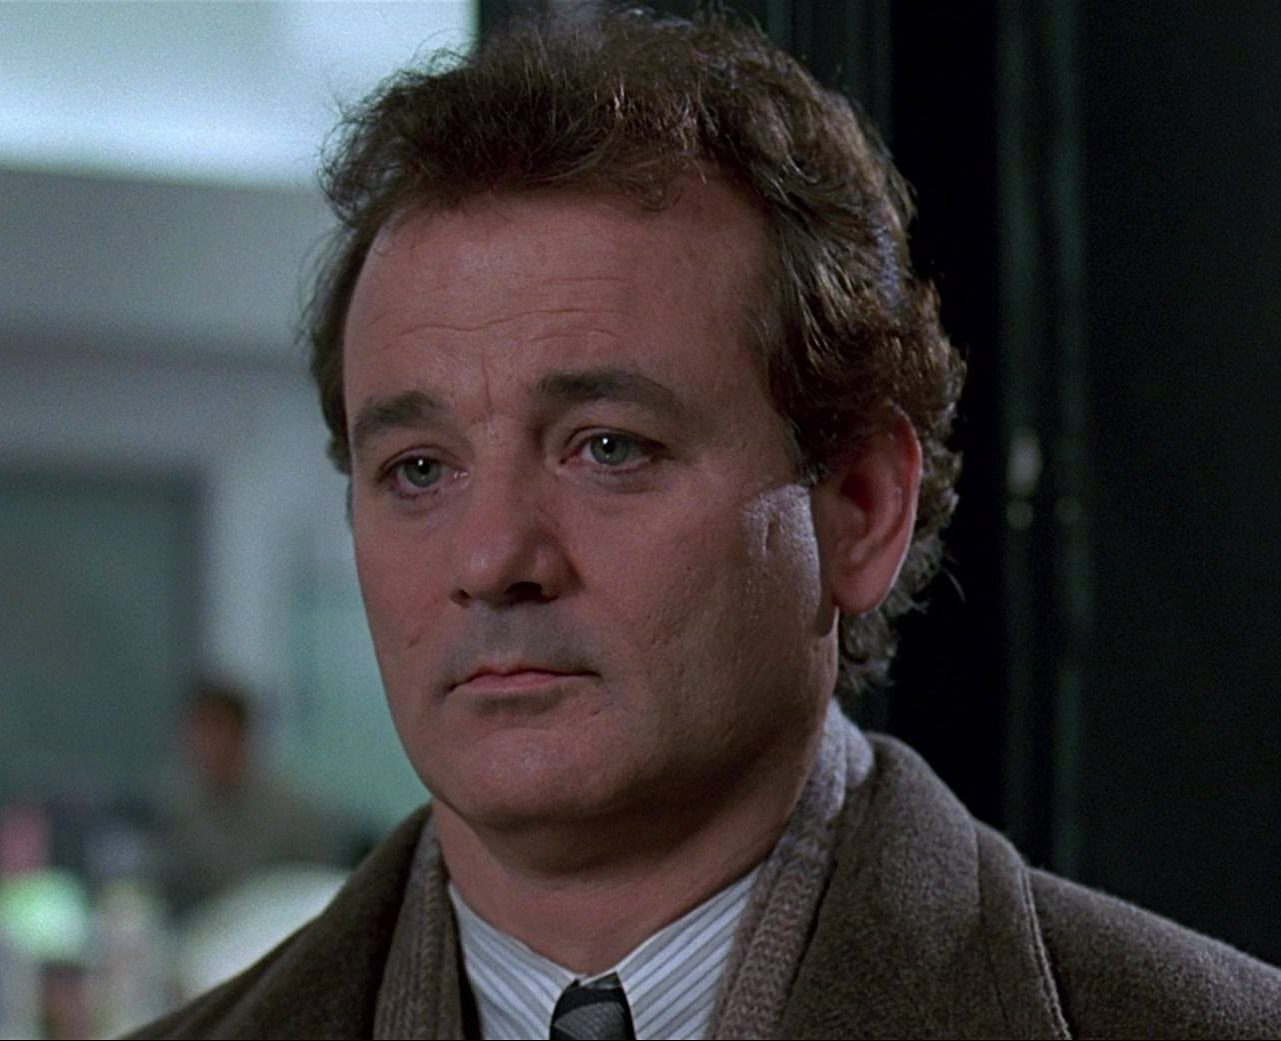 11 15 e1601284607452 20 Things You Might Not Have Realised About Groundhog Day